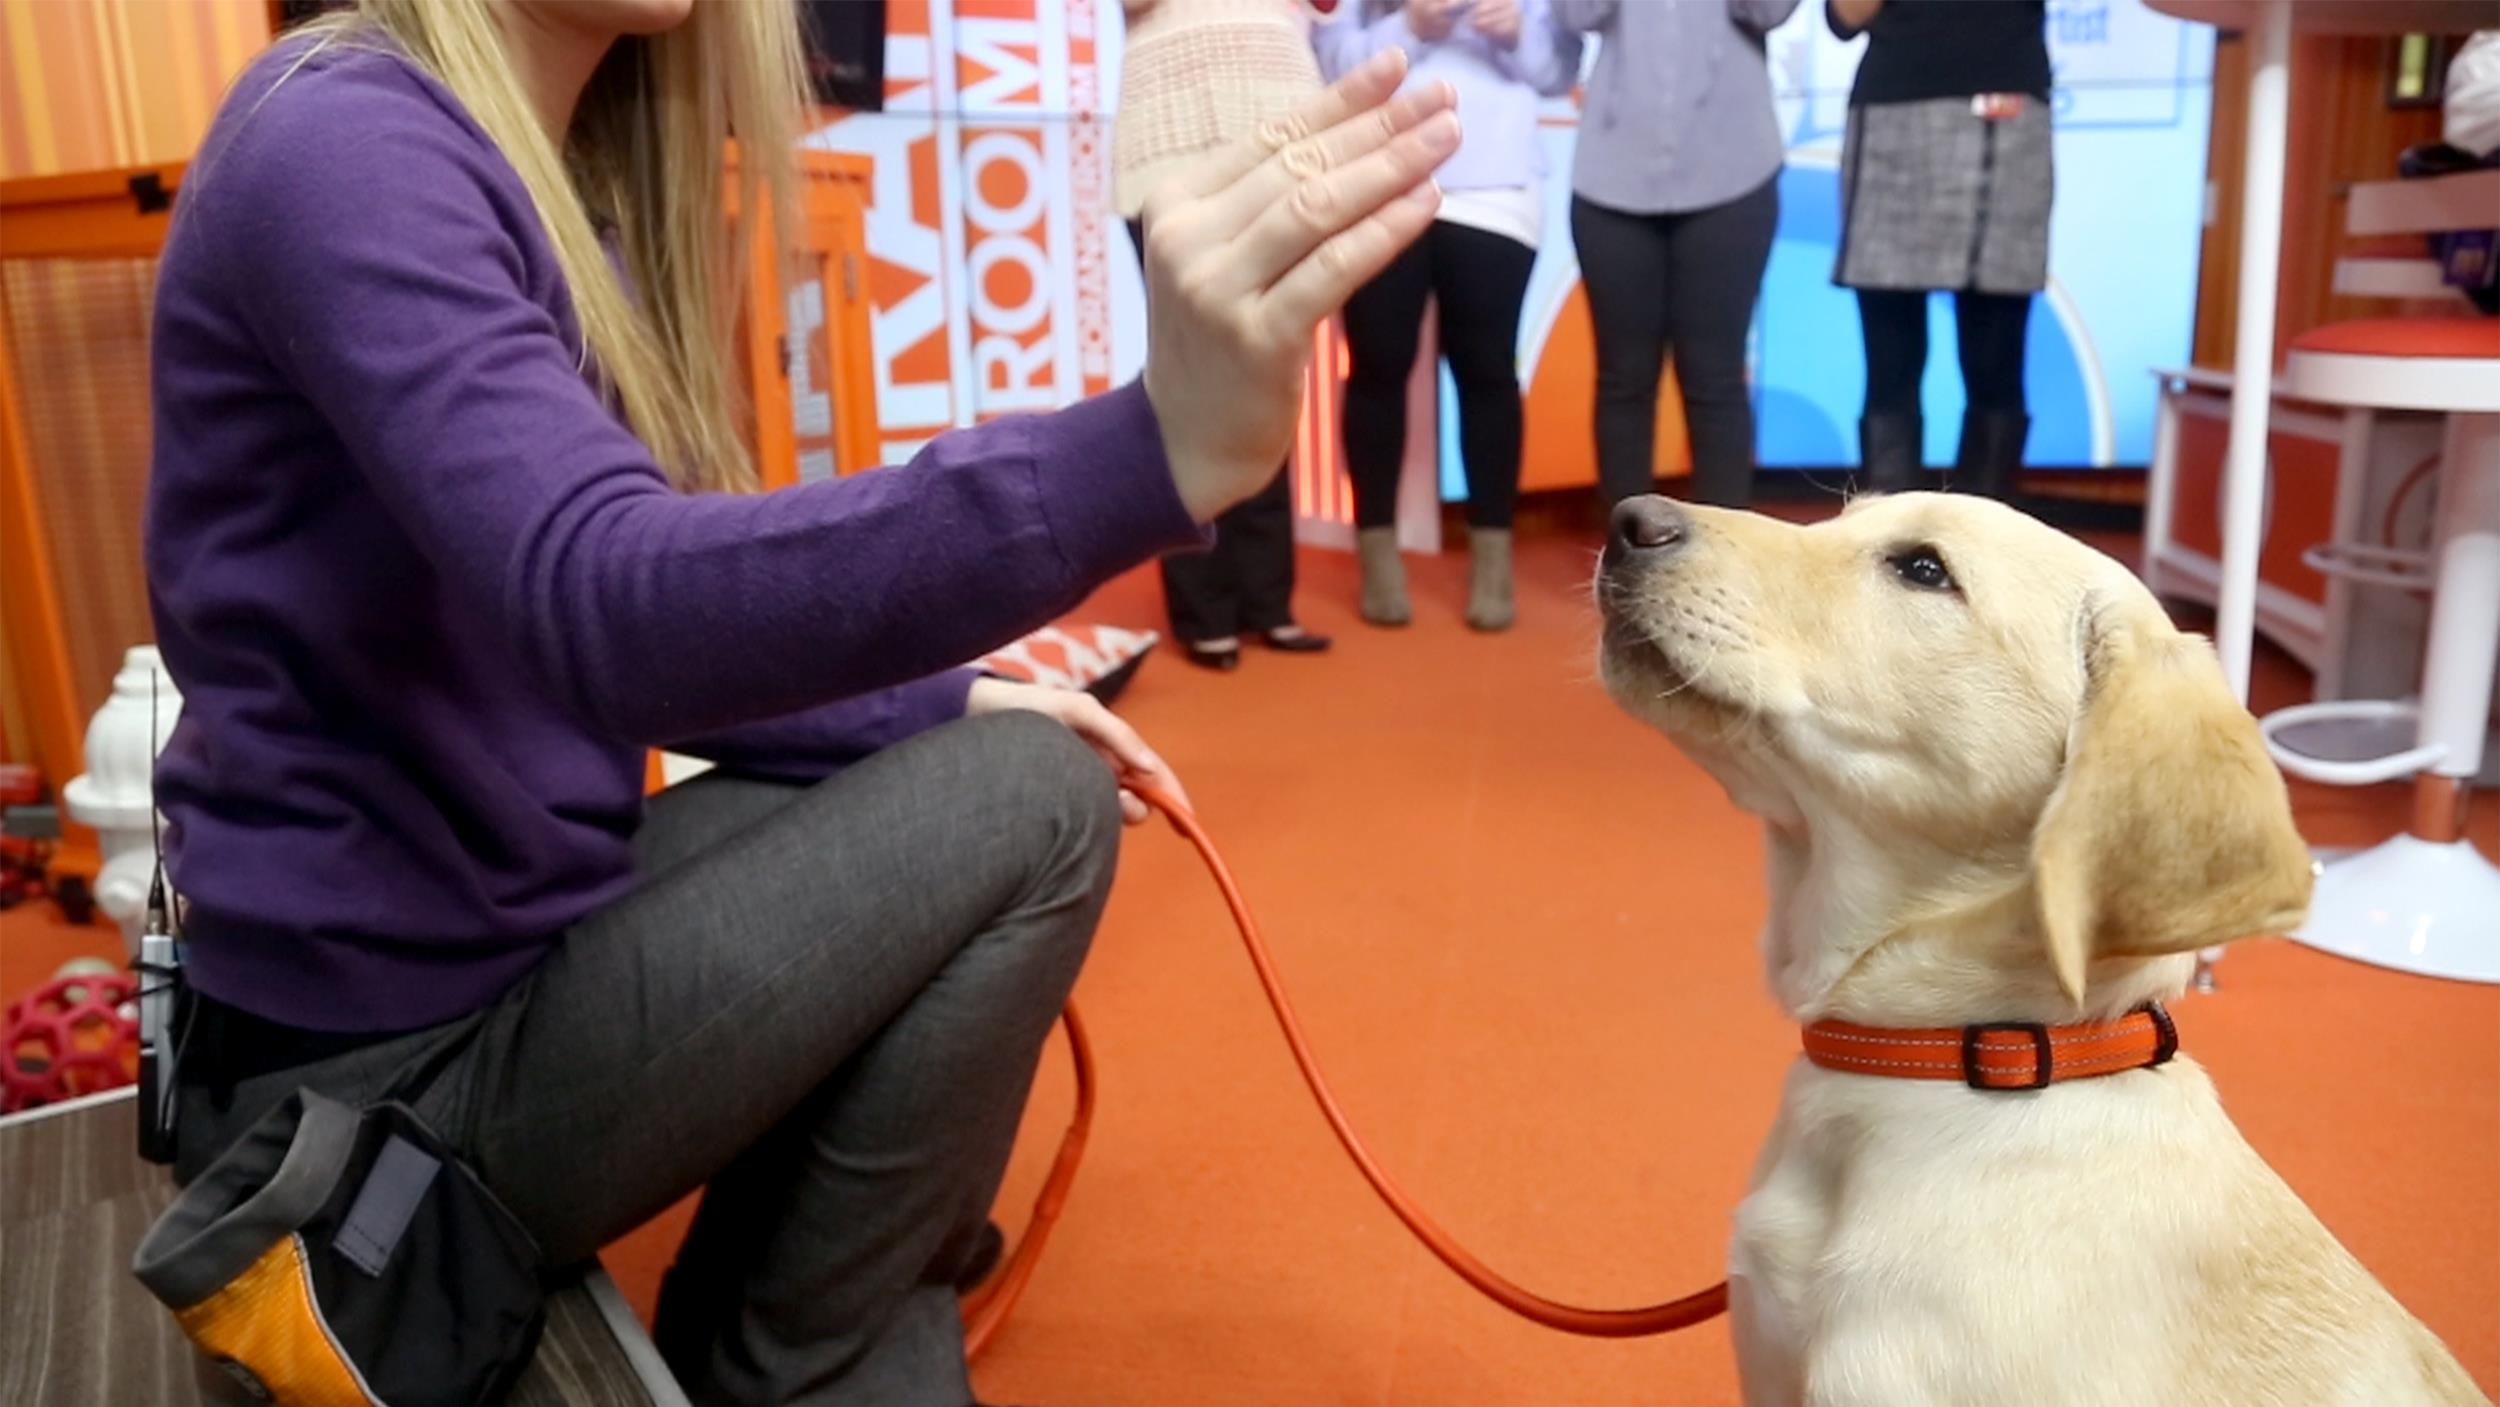 4 simple steps to train your puppy: Watch Wrangler demo his tricks